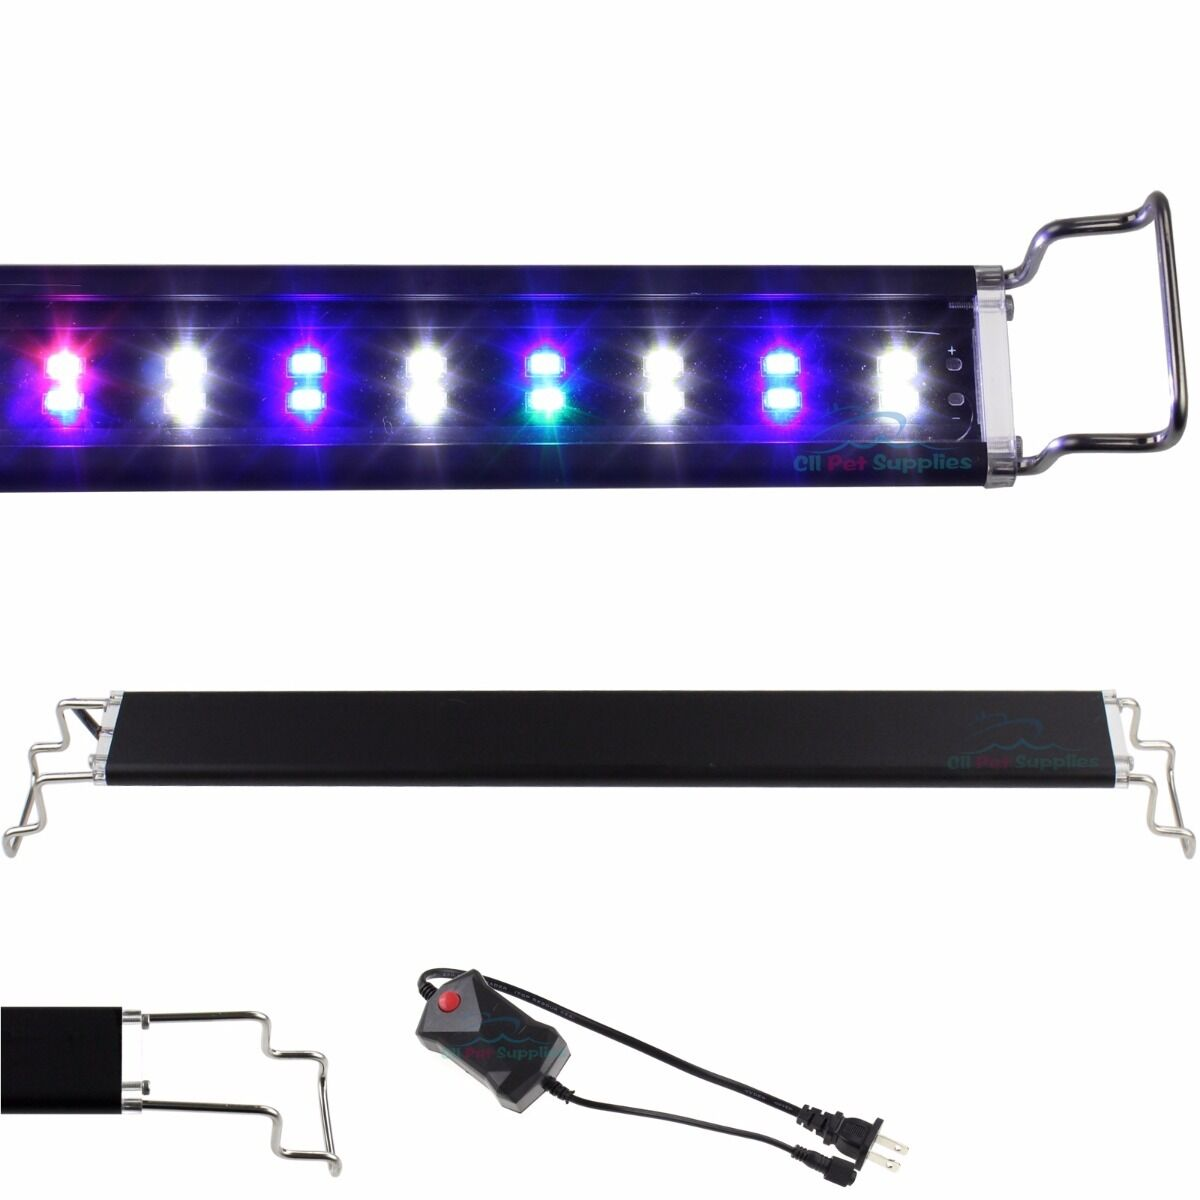 Specially designed combination of blue, red and green light will stimulate aquatic plant growth